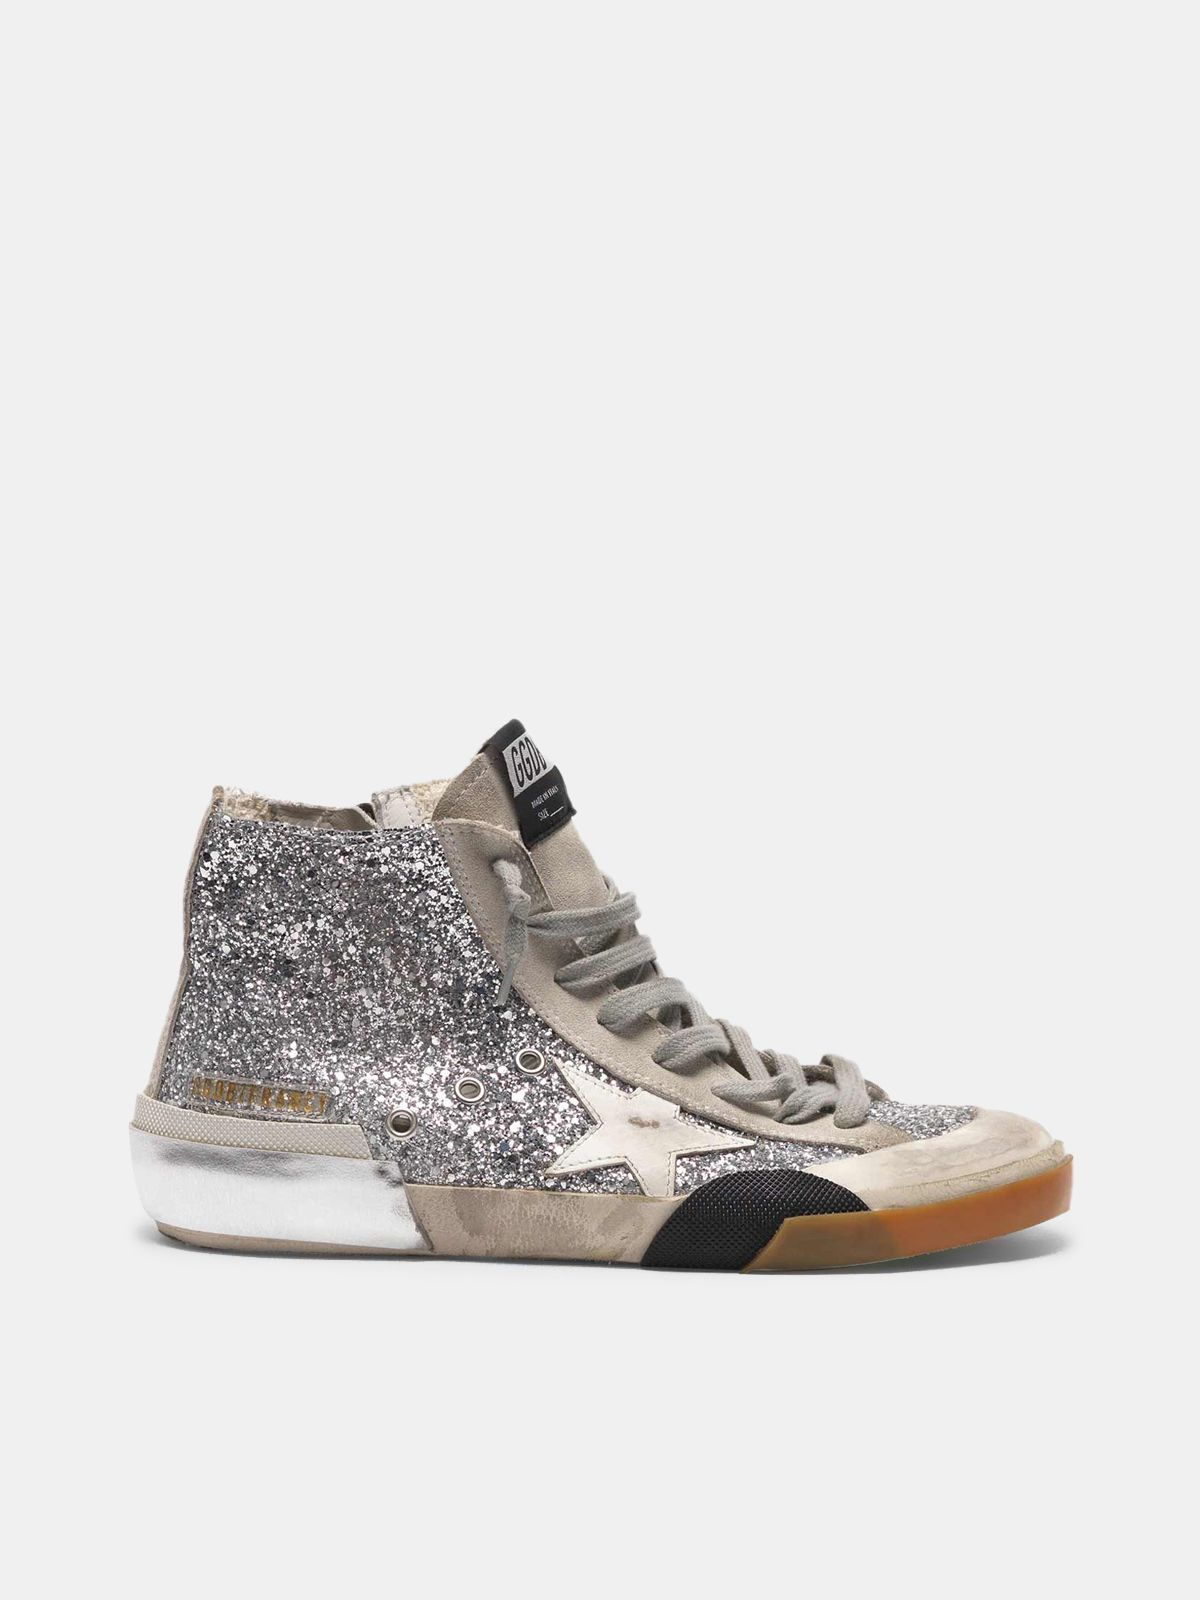 Golden Goose - Slide sneakers in patchwork style with multi-foxing technique and glitter upper in